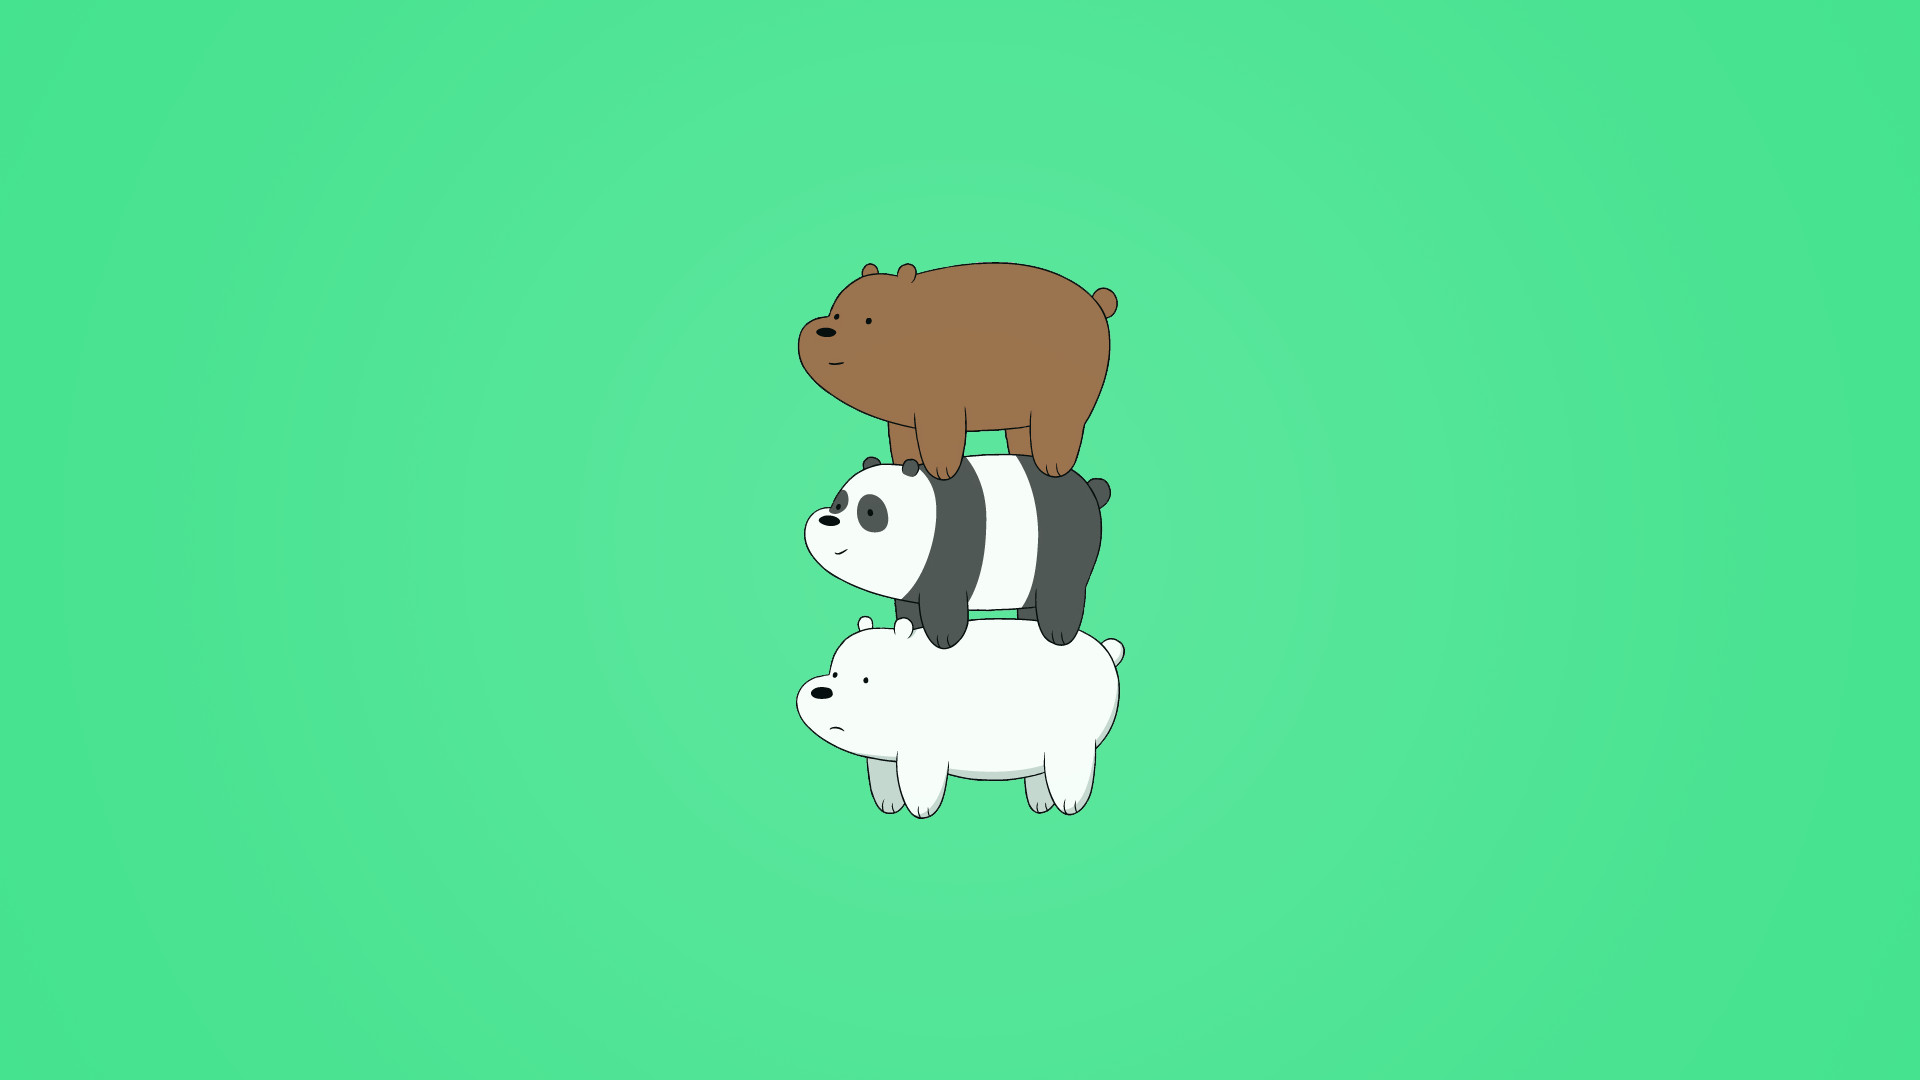 Top Collection Of We Bare Bears Iphone Wallpapers We Bare Bears Wallpaper Laptop 1920x1080 Wallpaper Teahub Io